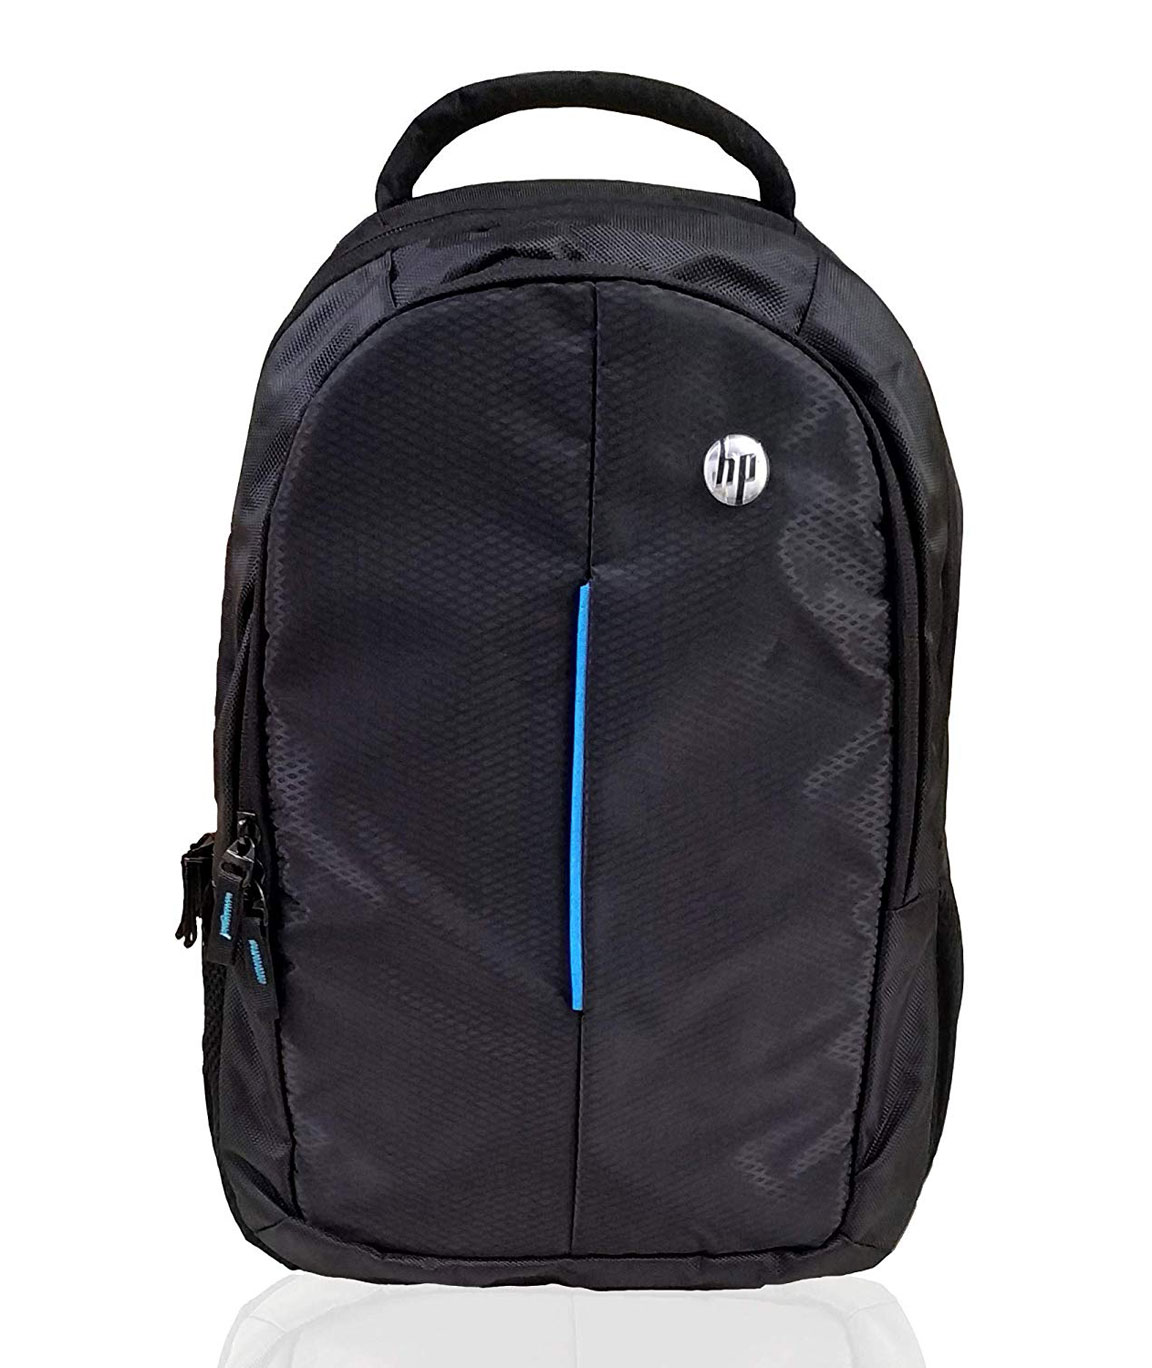 HP Entry Level Backpack for Upto 15.6 Inch Laptops